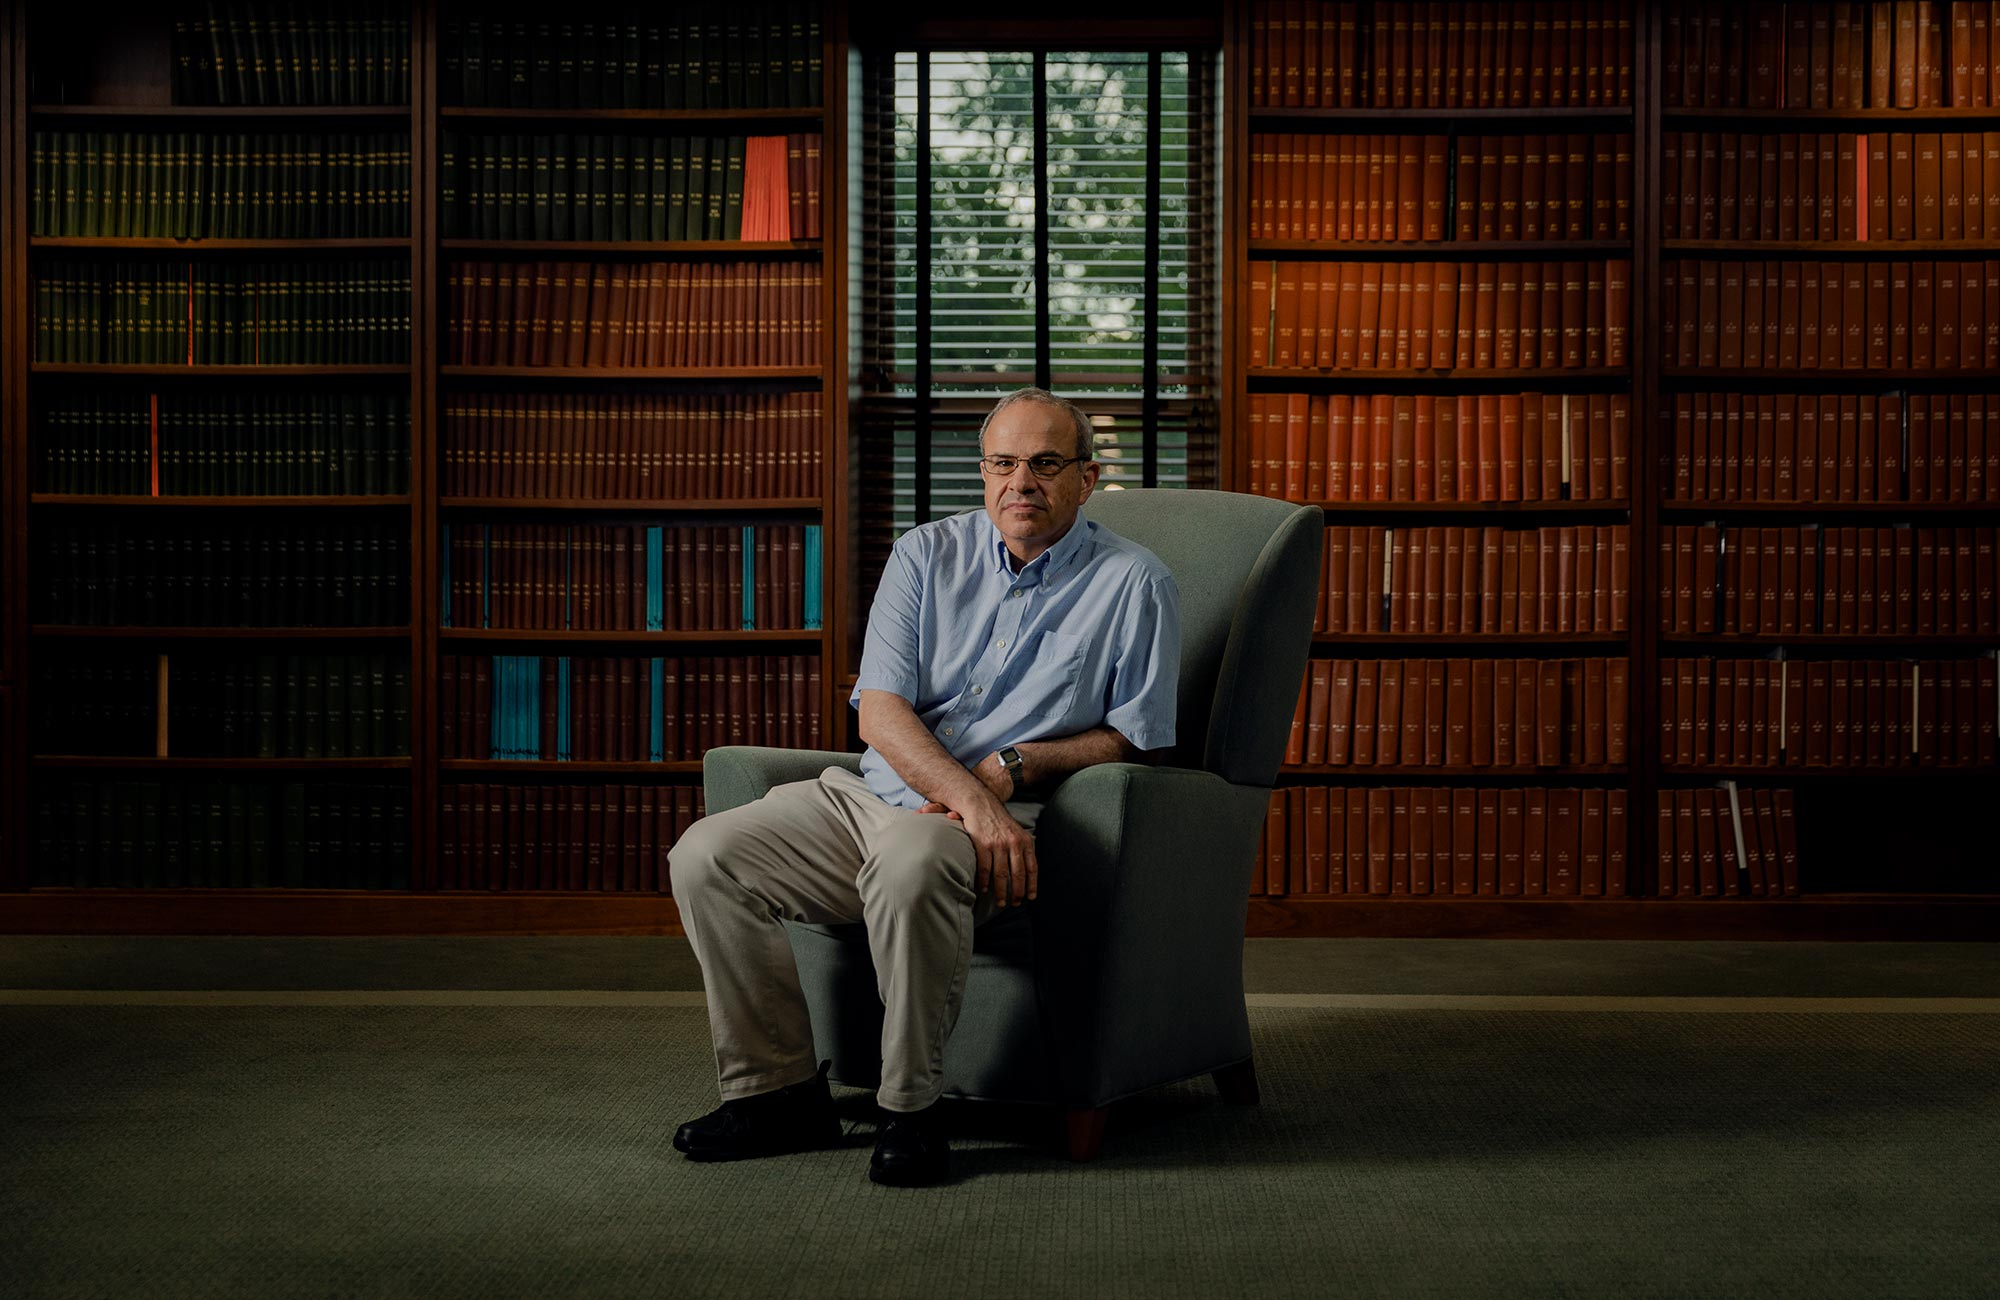 Color photo of Seiberg sitting in an easy chair in front of multiple shelves full of books.